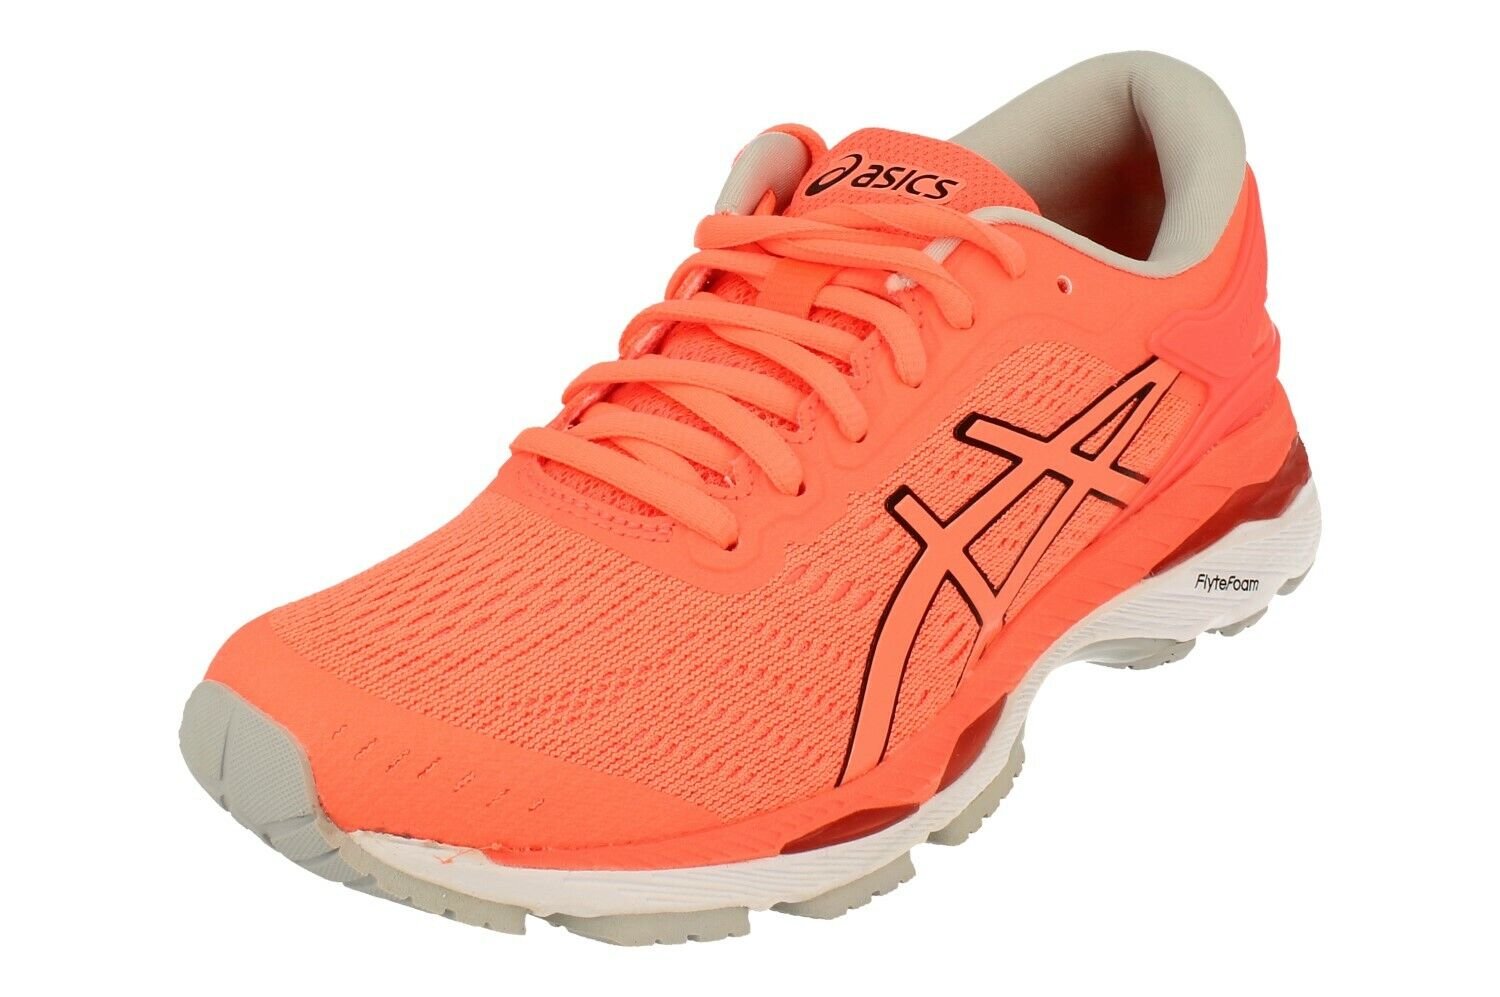 Asics Gel-Kayano 24 Womens Running Trainers T799N Sneakers shoes 0690